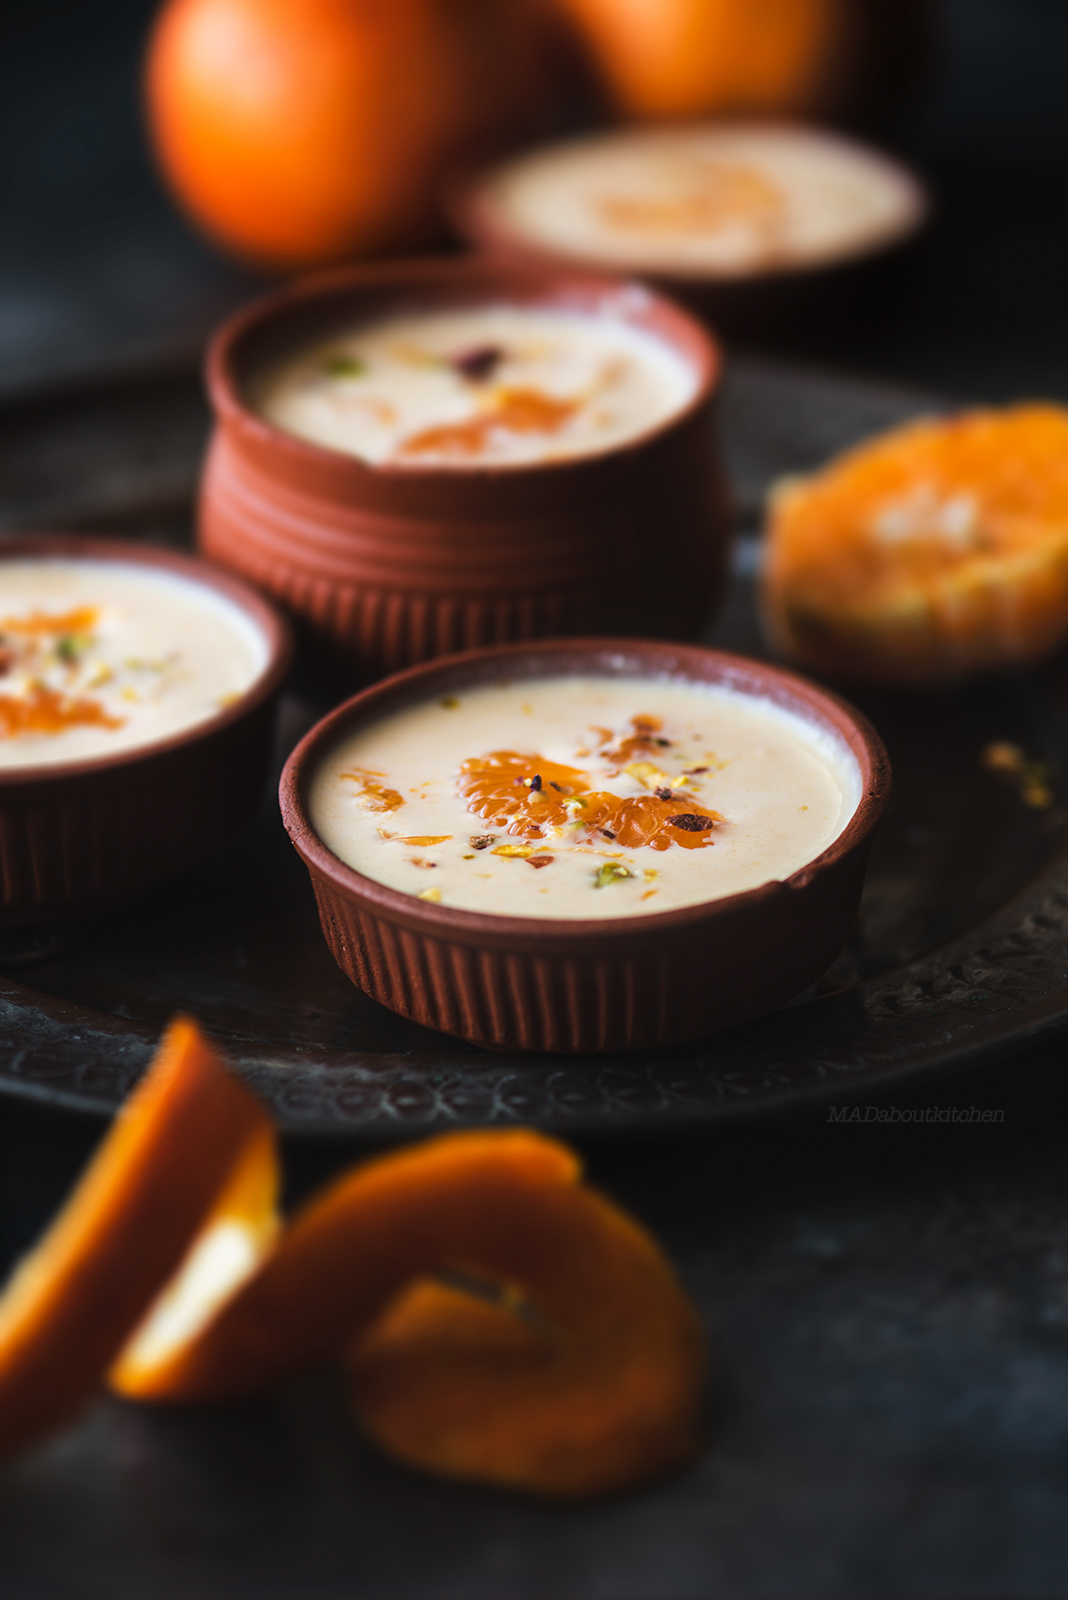 Kheer Komola is a Bengali Orange pudding, made by reducing milk and adding fresh Orange segments to it and is not only rich but also fresh.